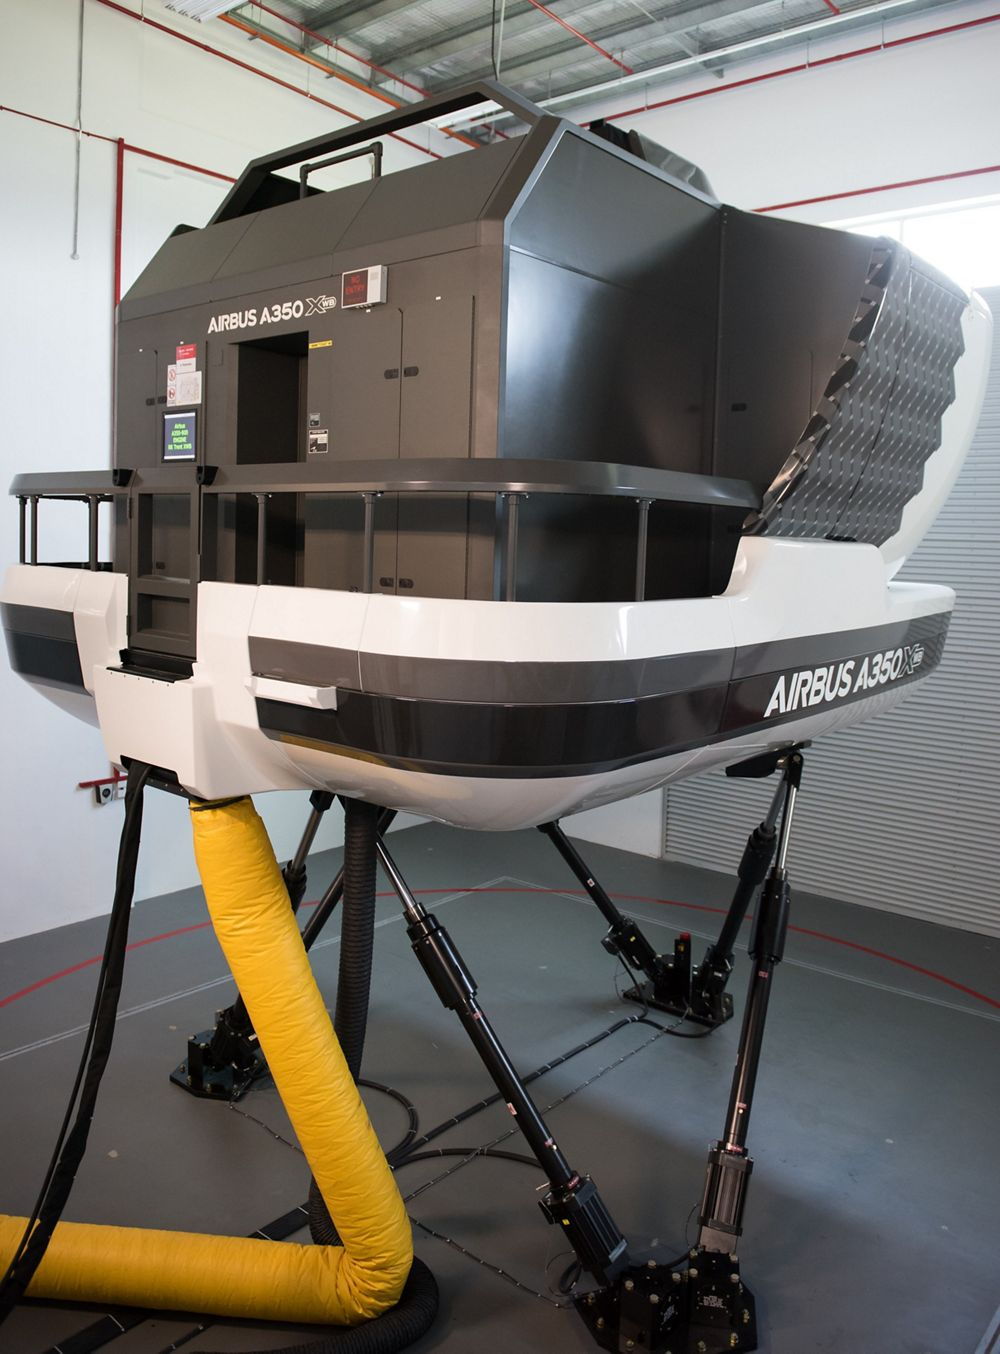 Airbus Asia Training Centre takes a leadership role in flight simulation